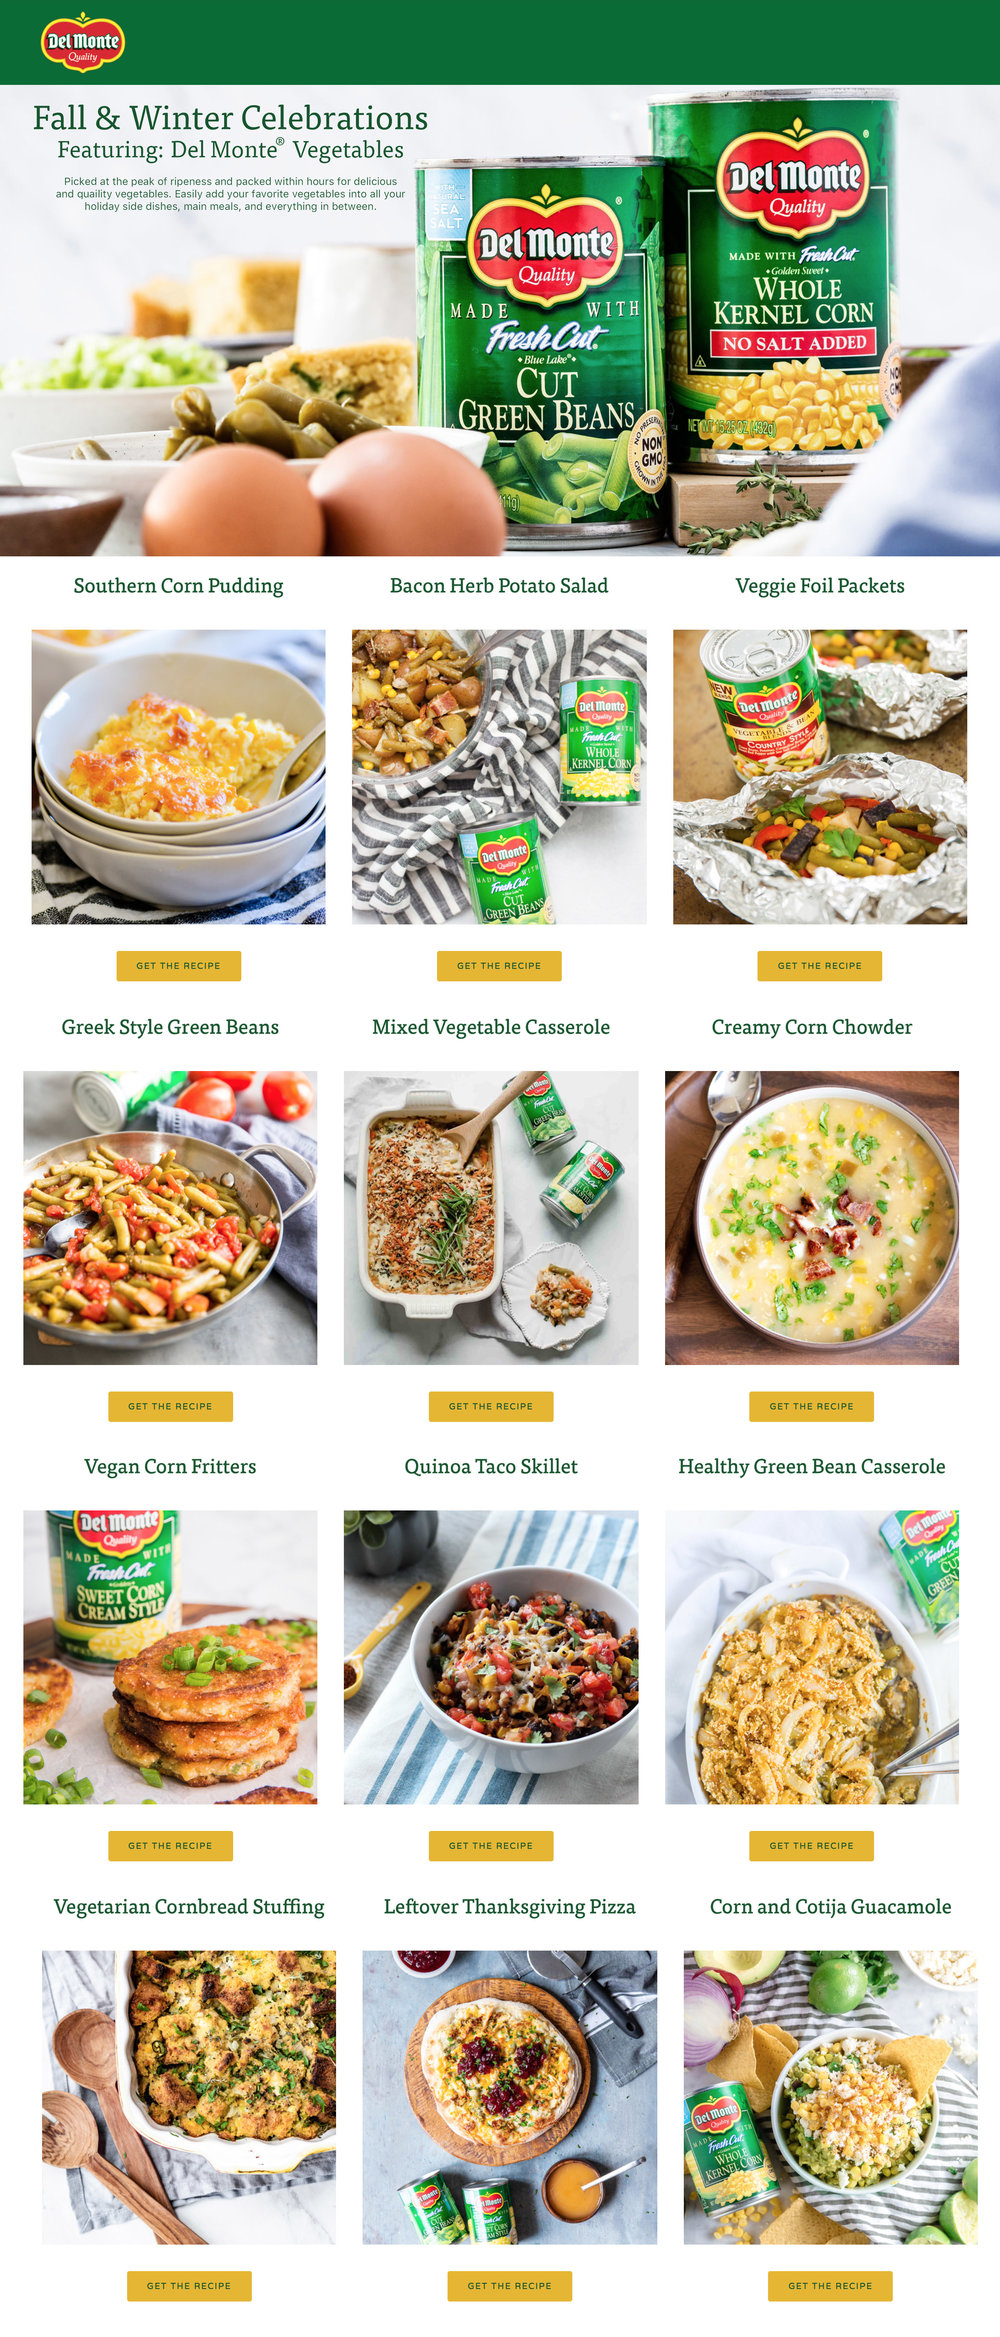 Recipe Ideas with Del Monte